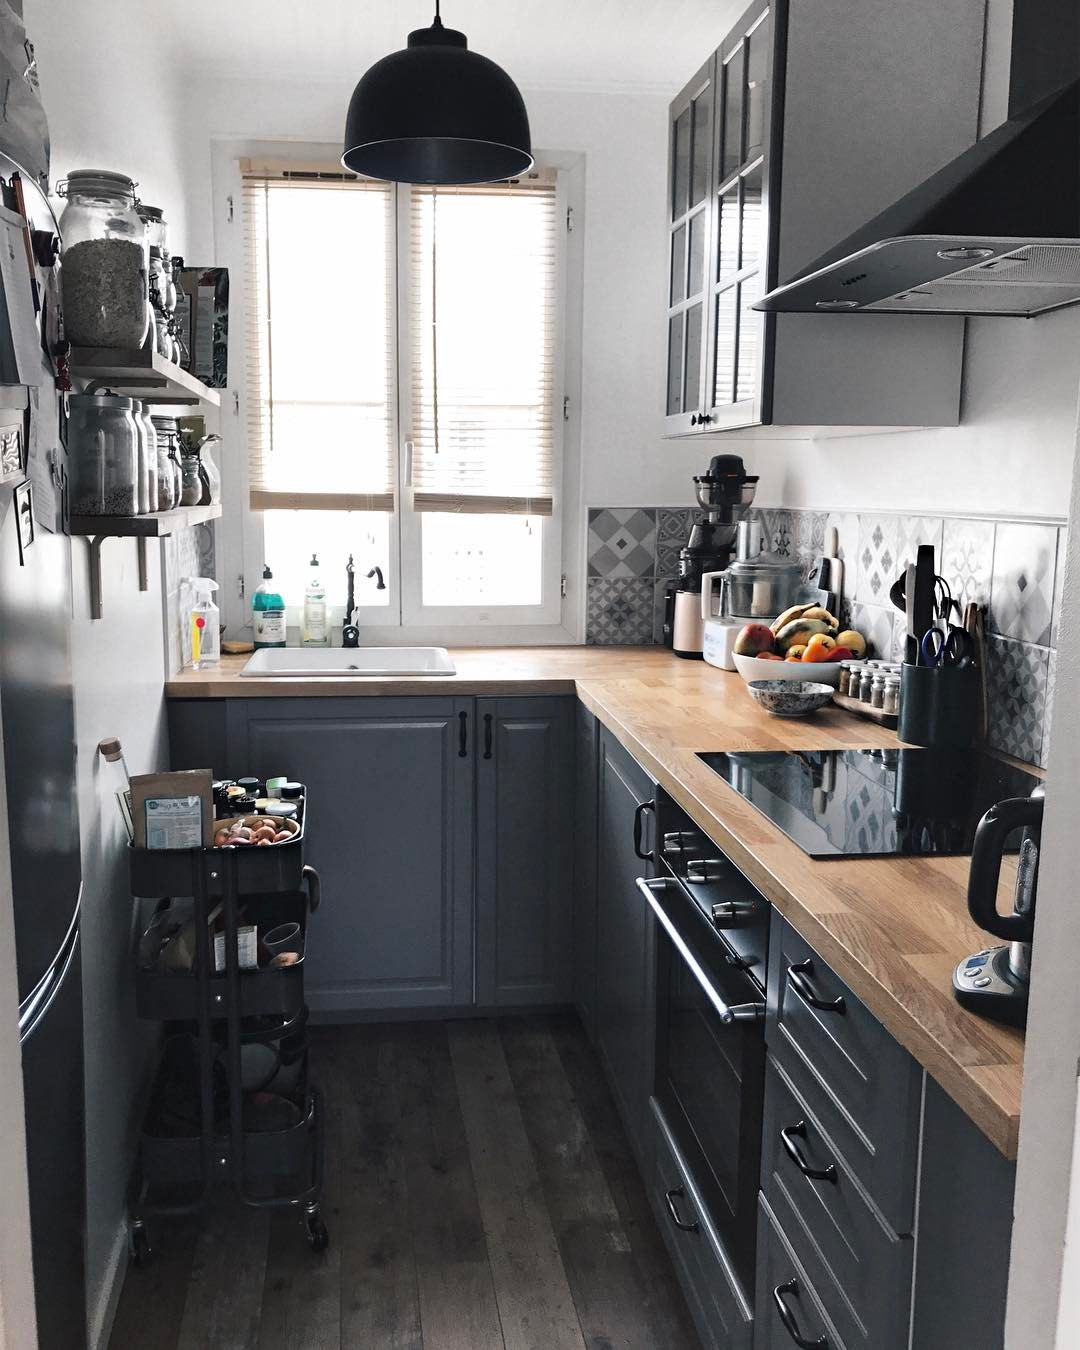 Naturally lety on instagram   little kitchen leves la main si toi aussi tu as une mini cuisine de  vive ikeafrance also pin by ays decor in pinterest design rh